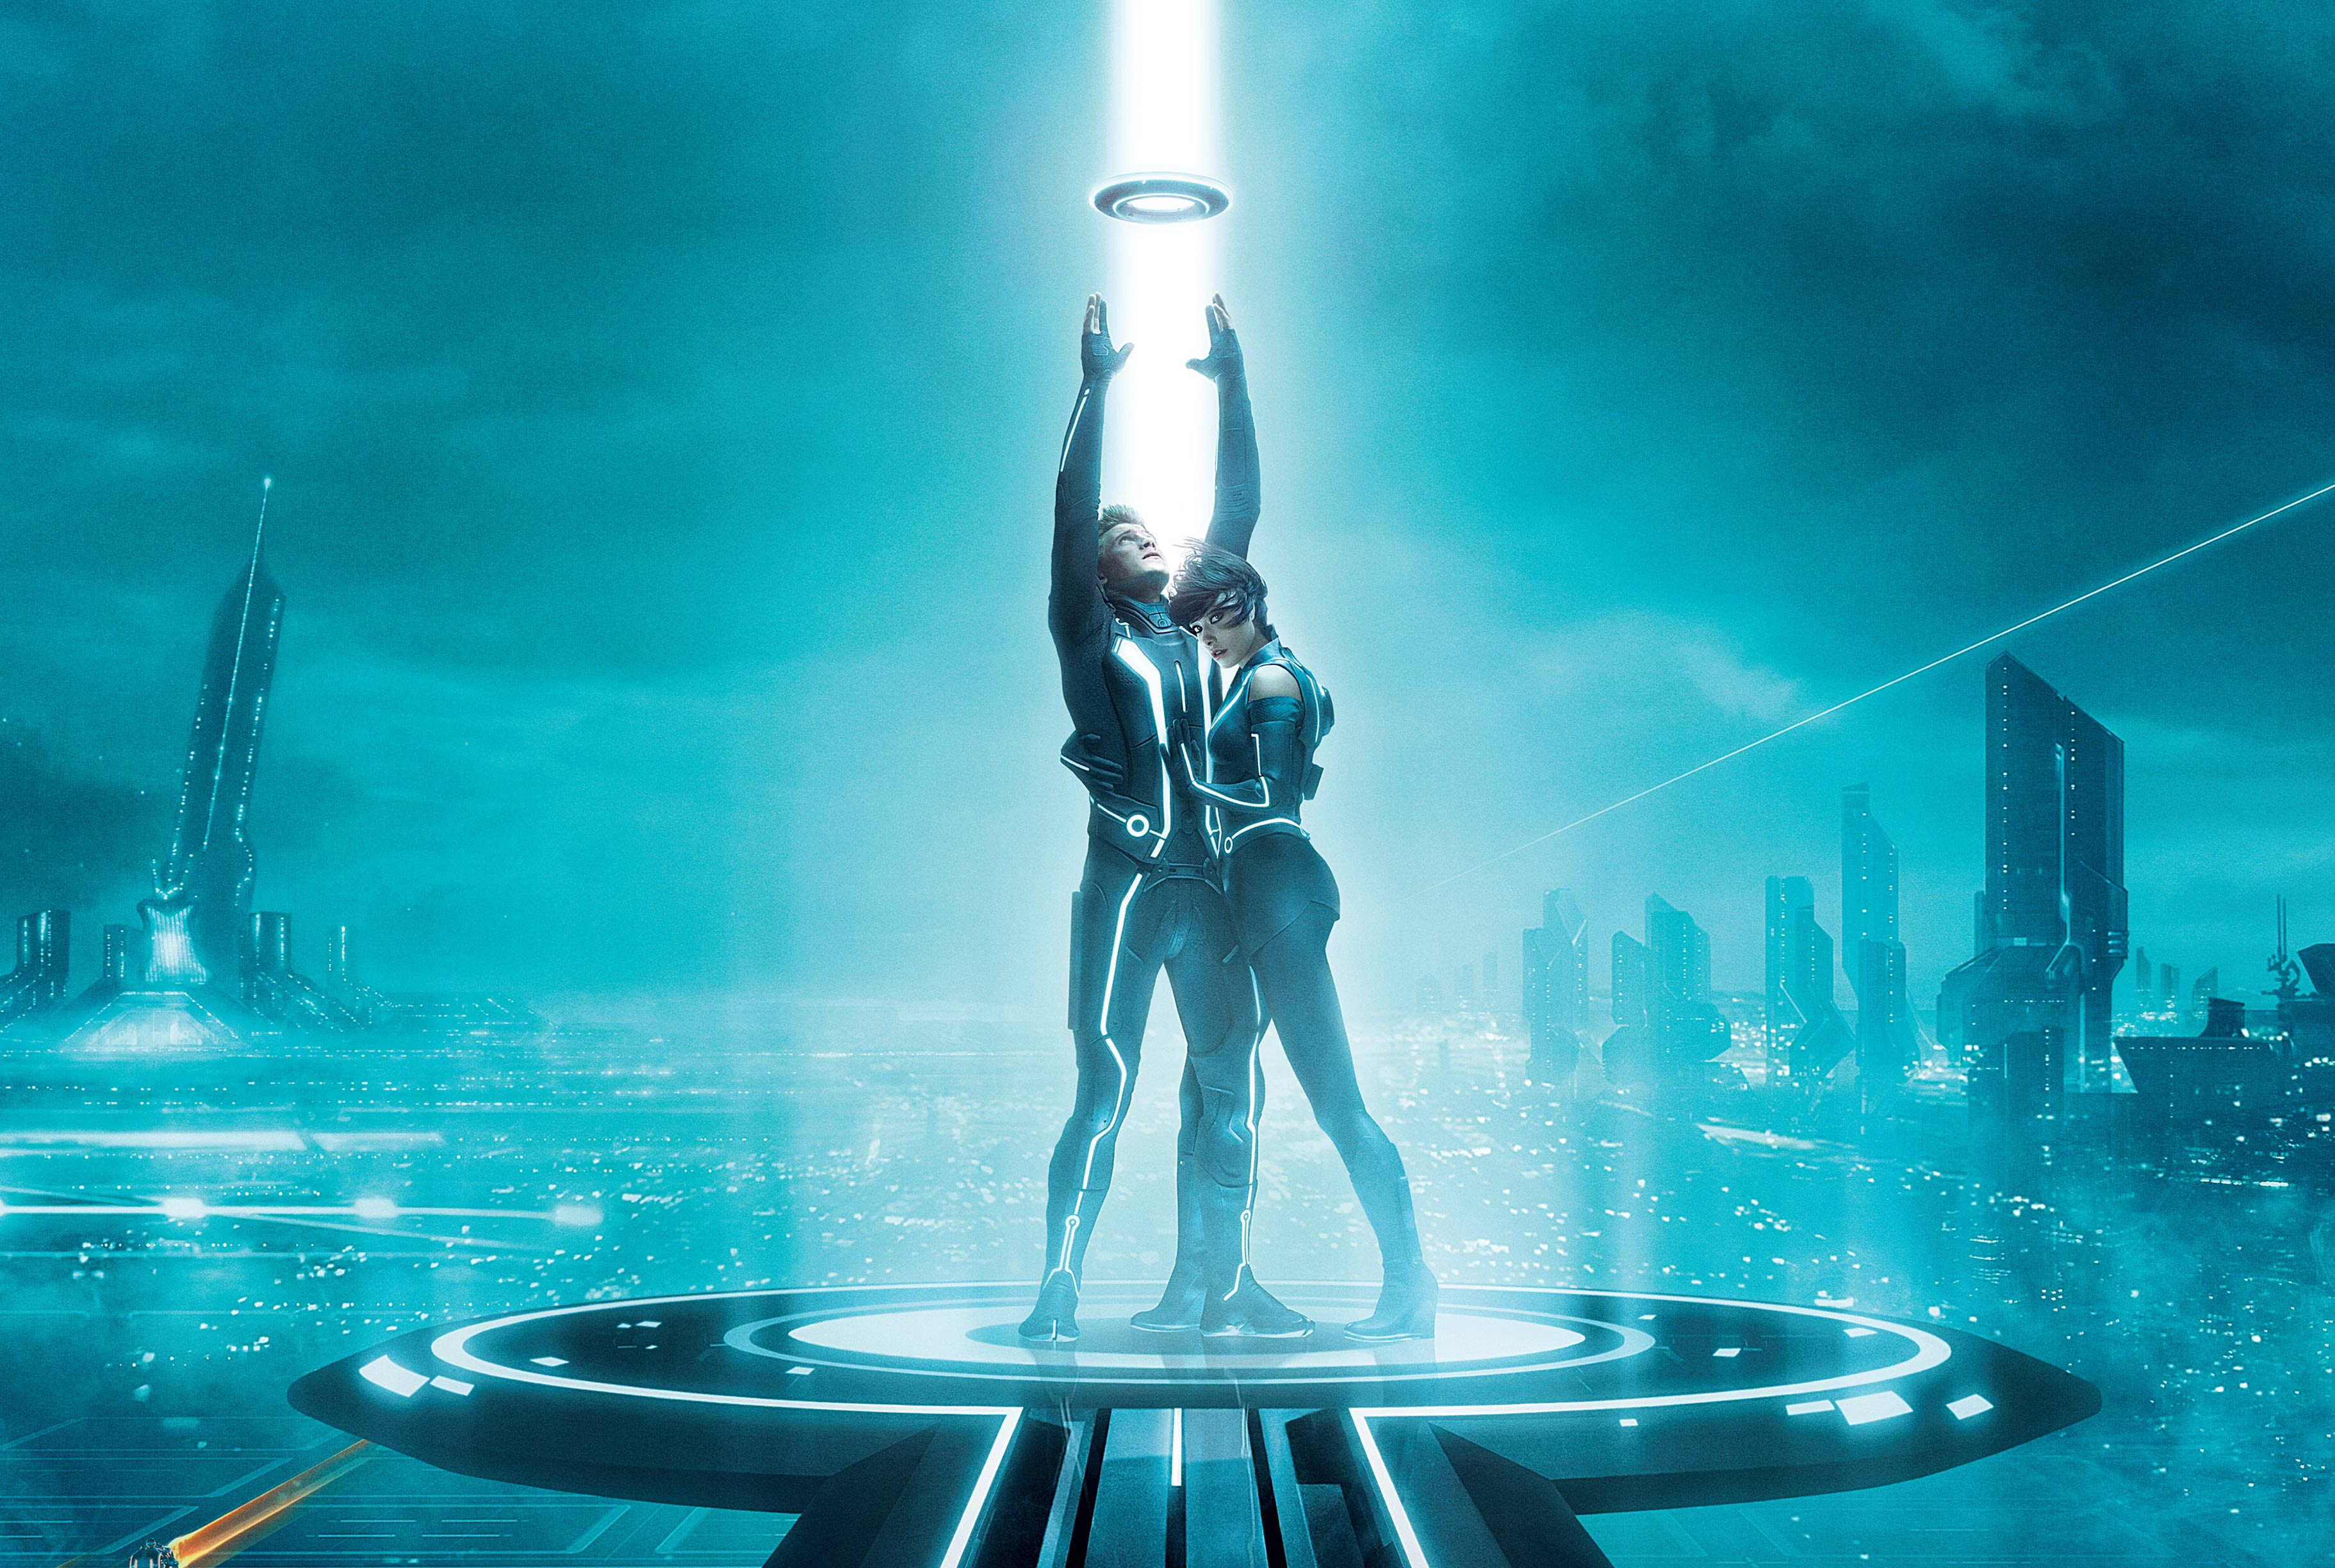 group of tron city movies hd